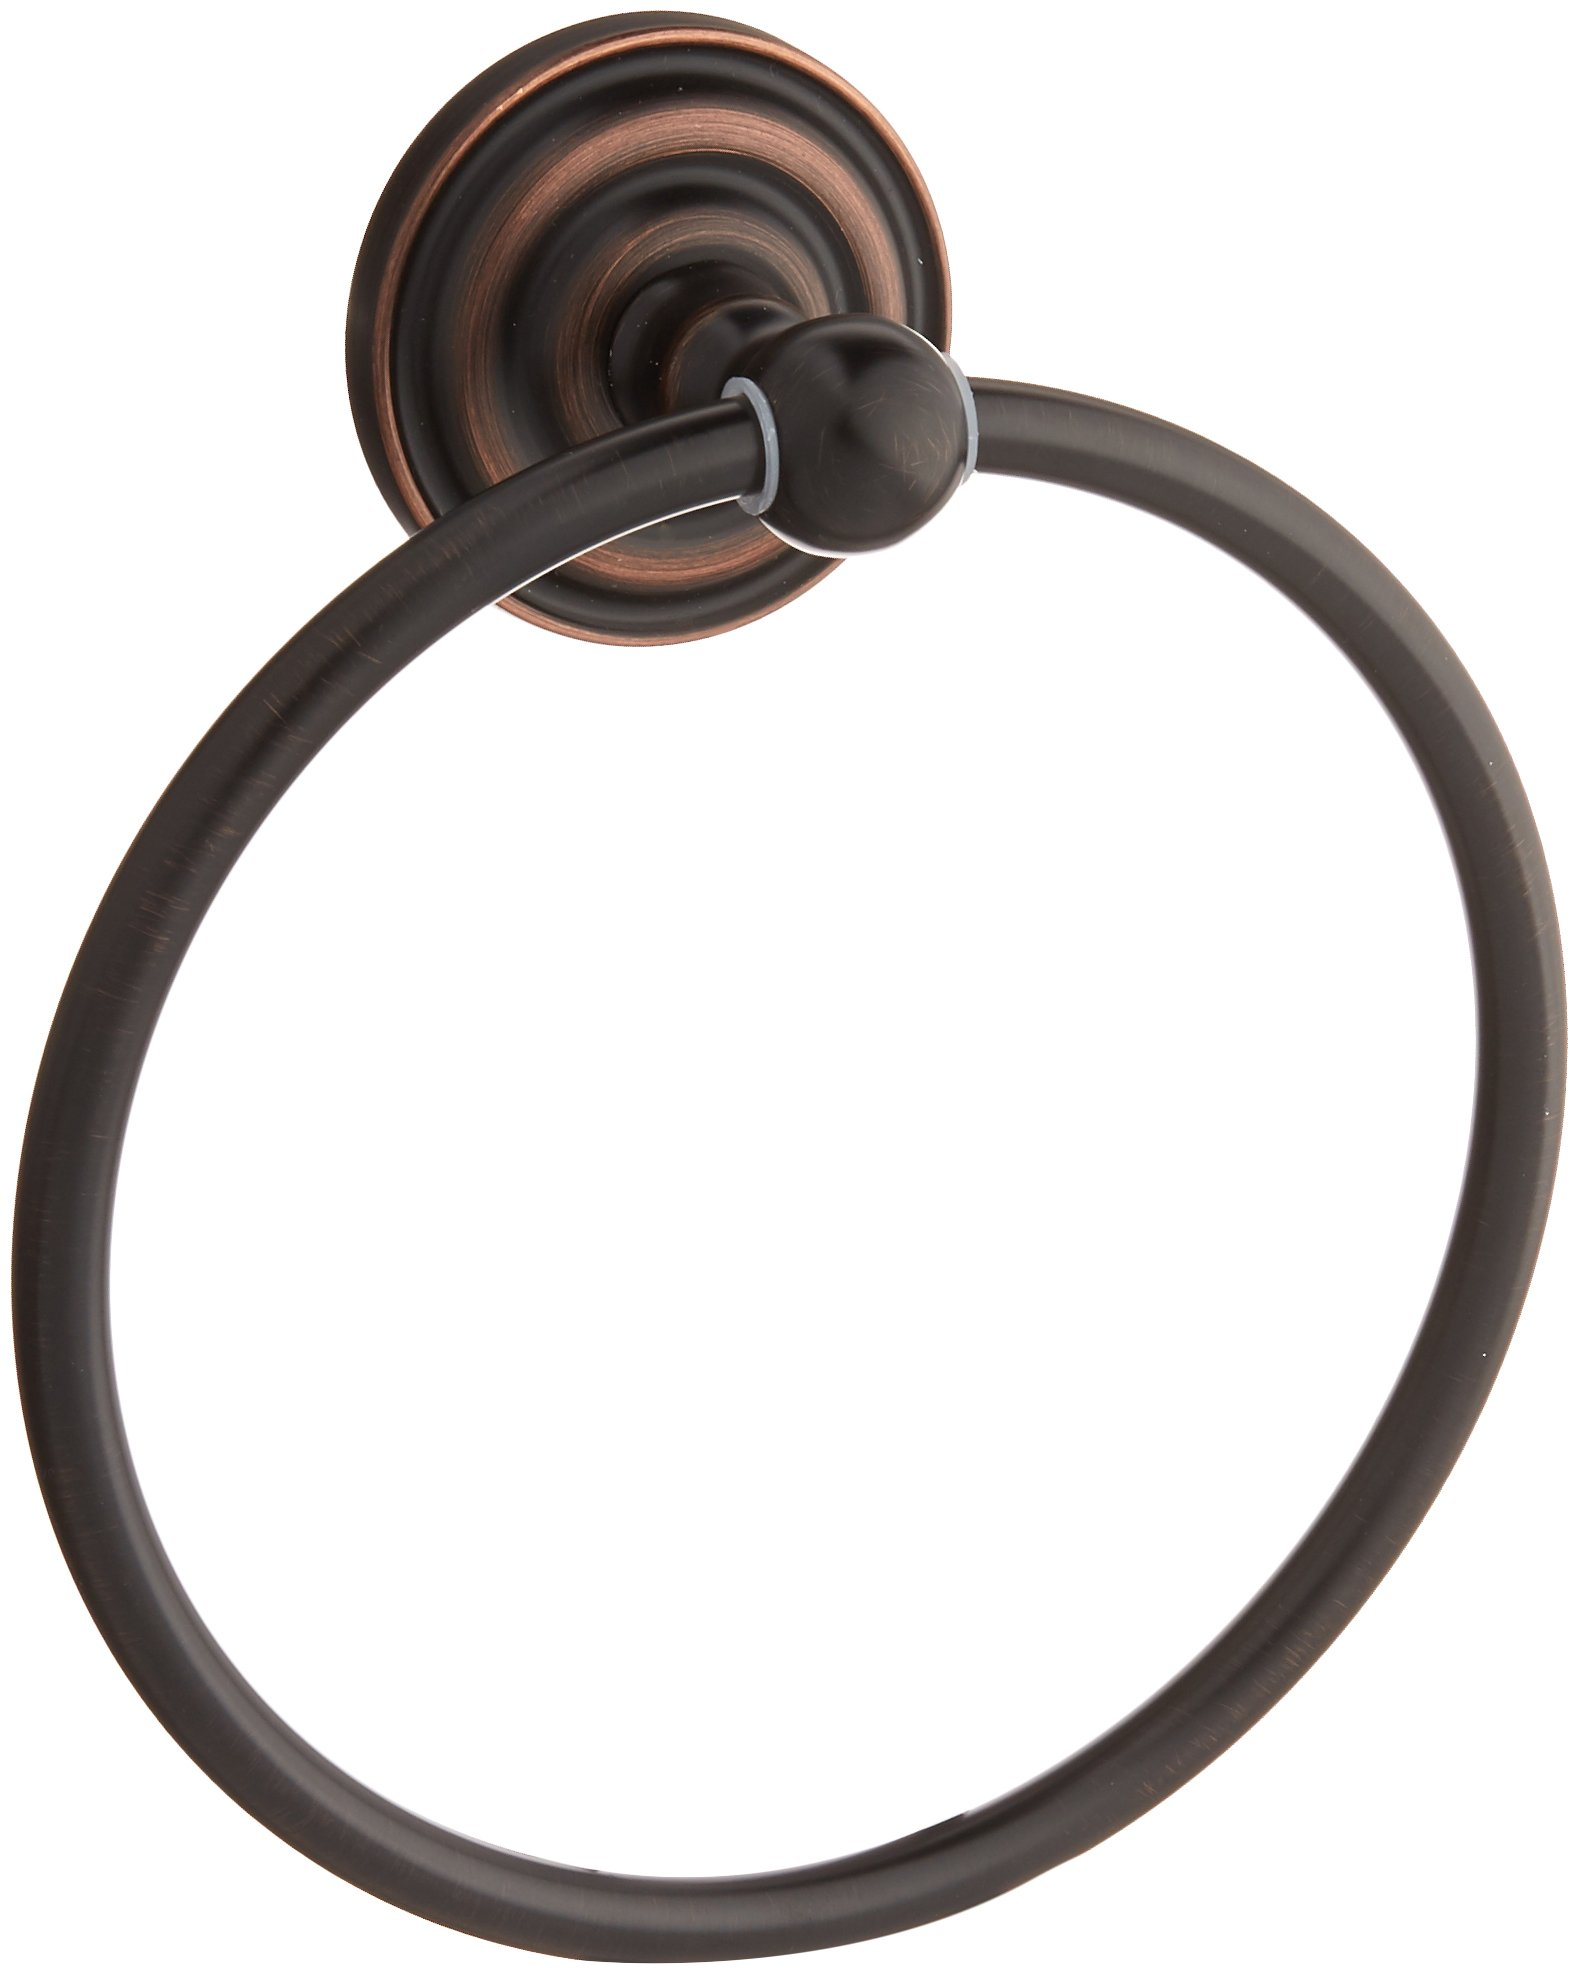 Pfister BRB-R0YY Redmond Collection Towel Ring, Tuscan Bronze